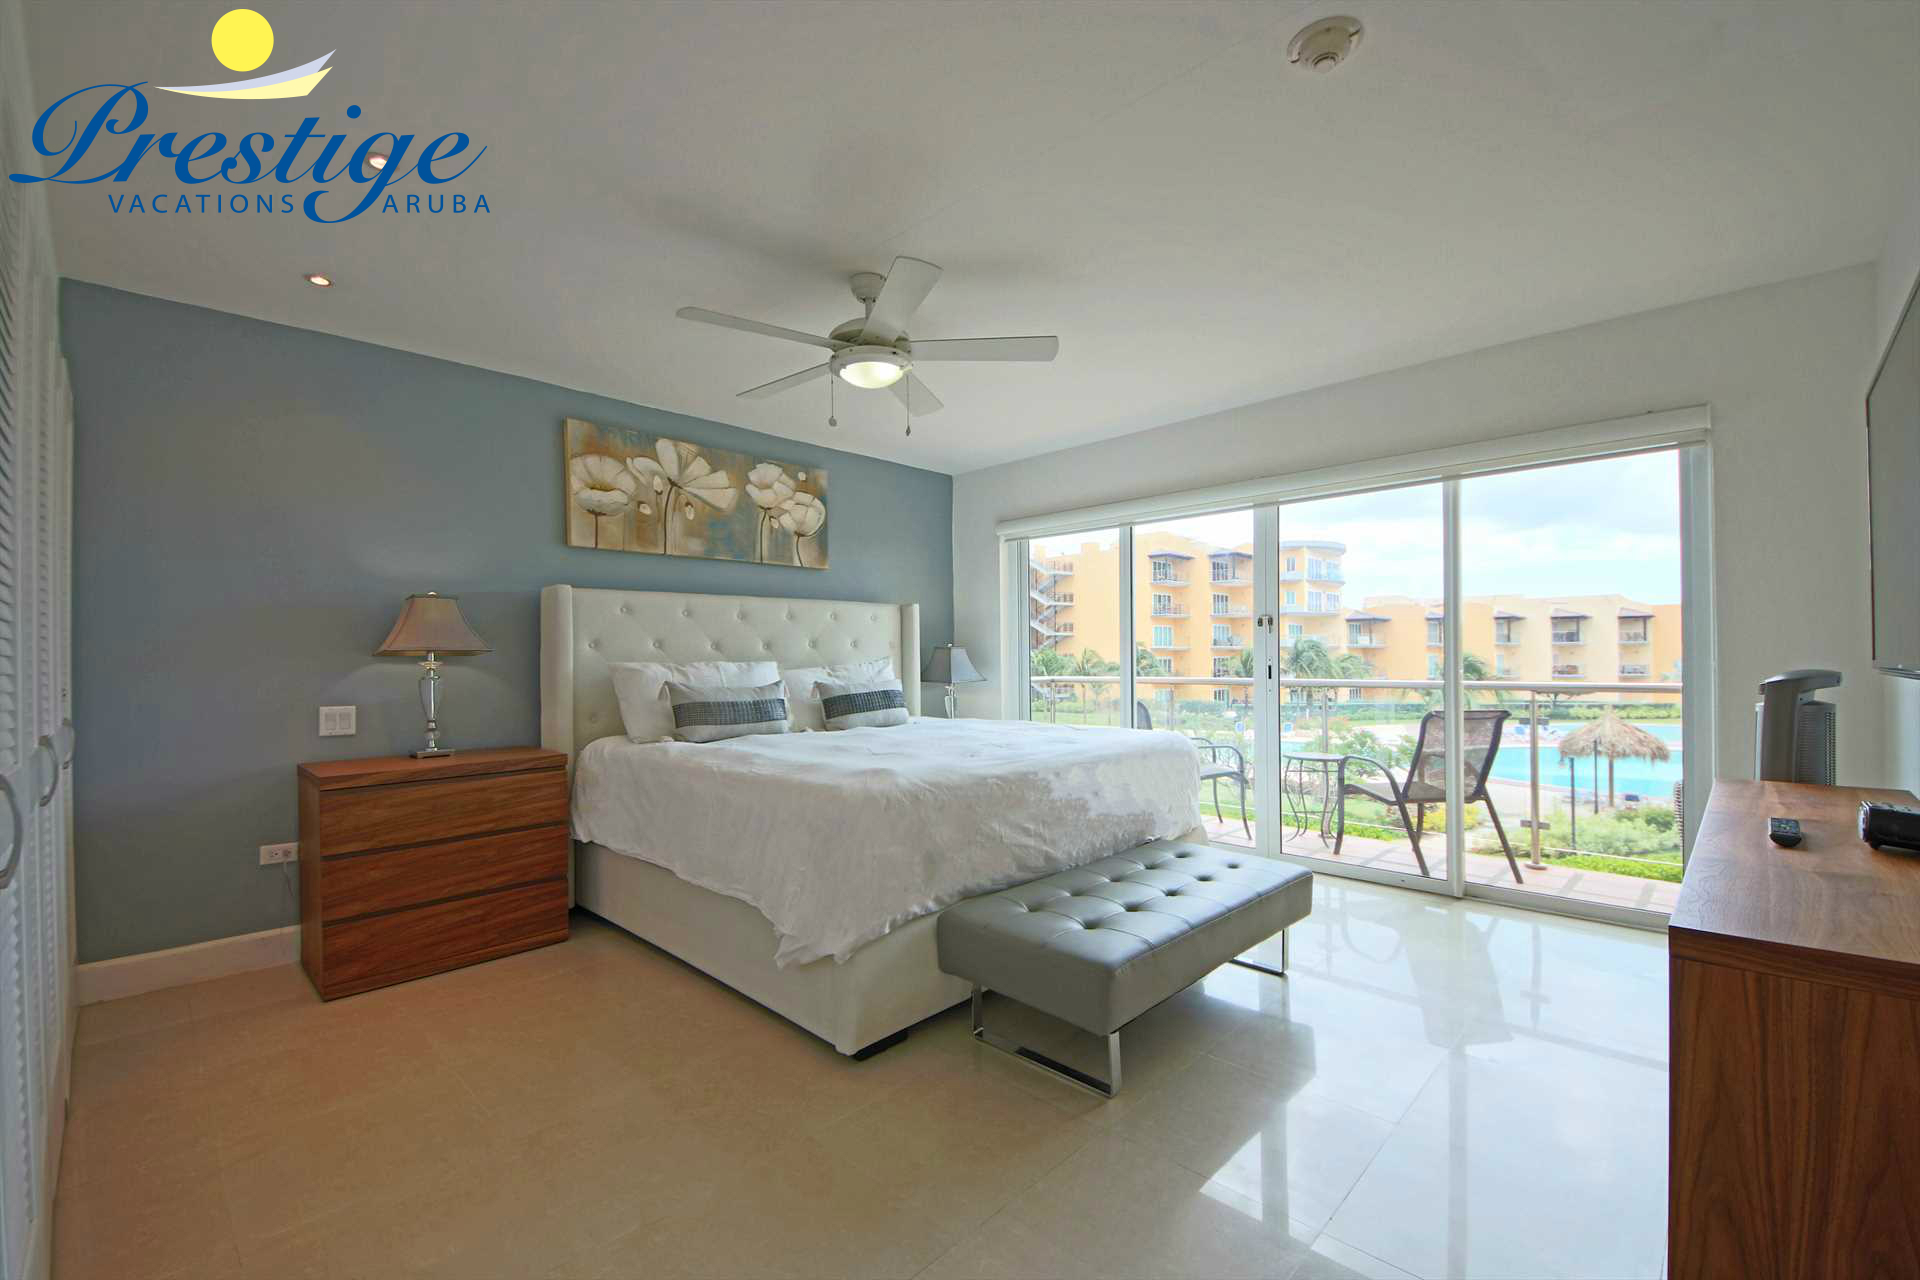 The master bedroom with a king-size bed